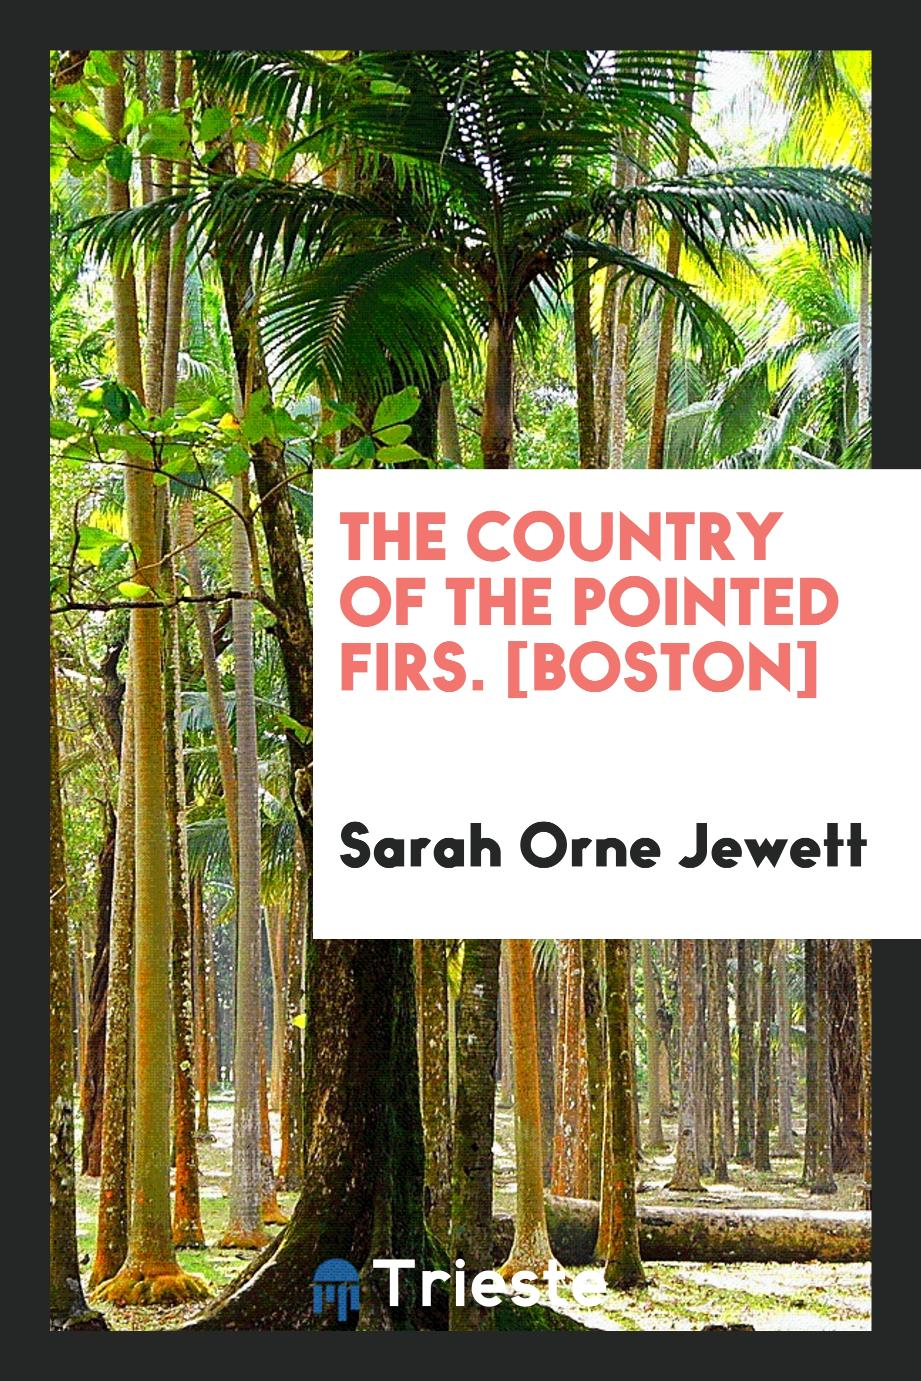 The Country of the Pointed Firs. [Boston]